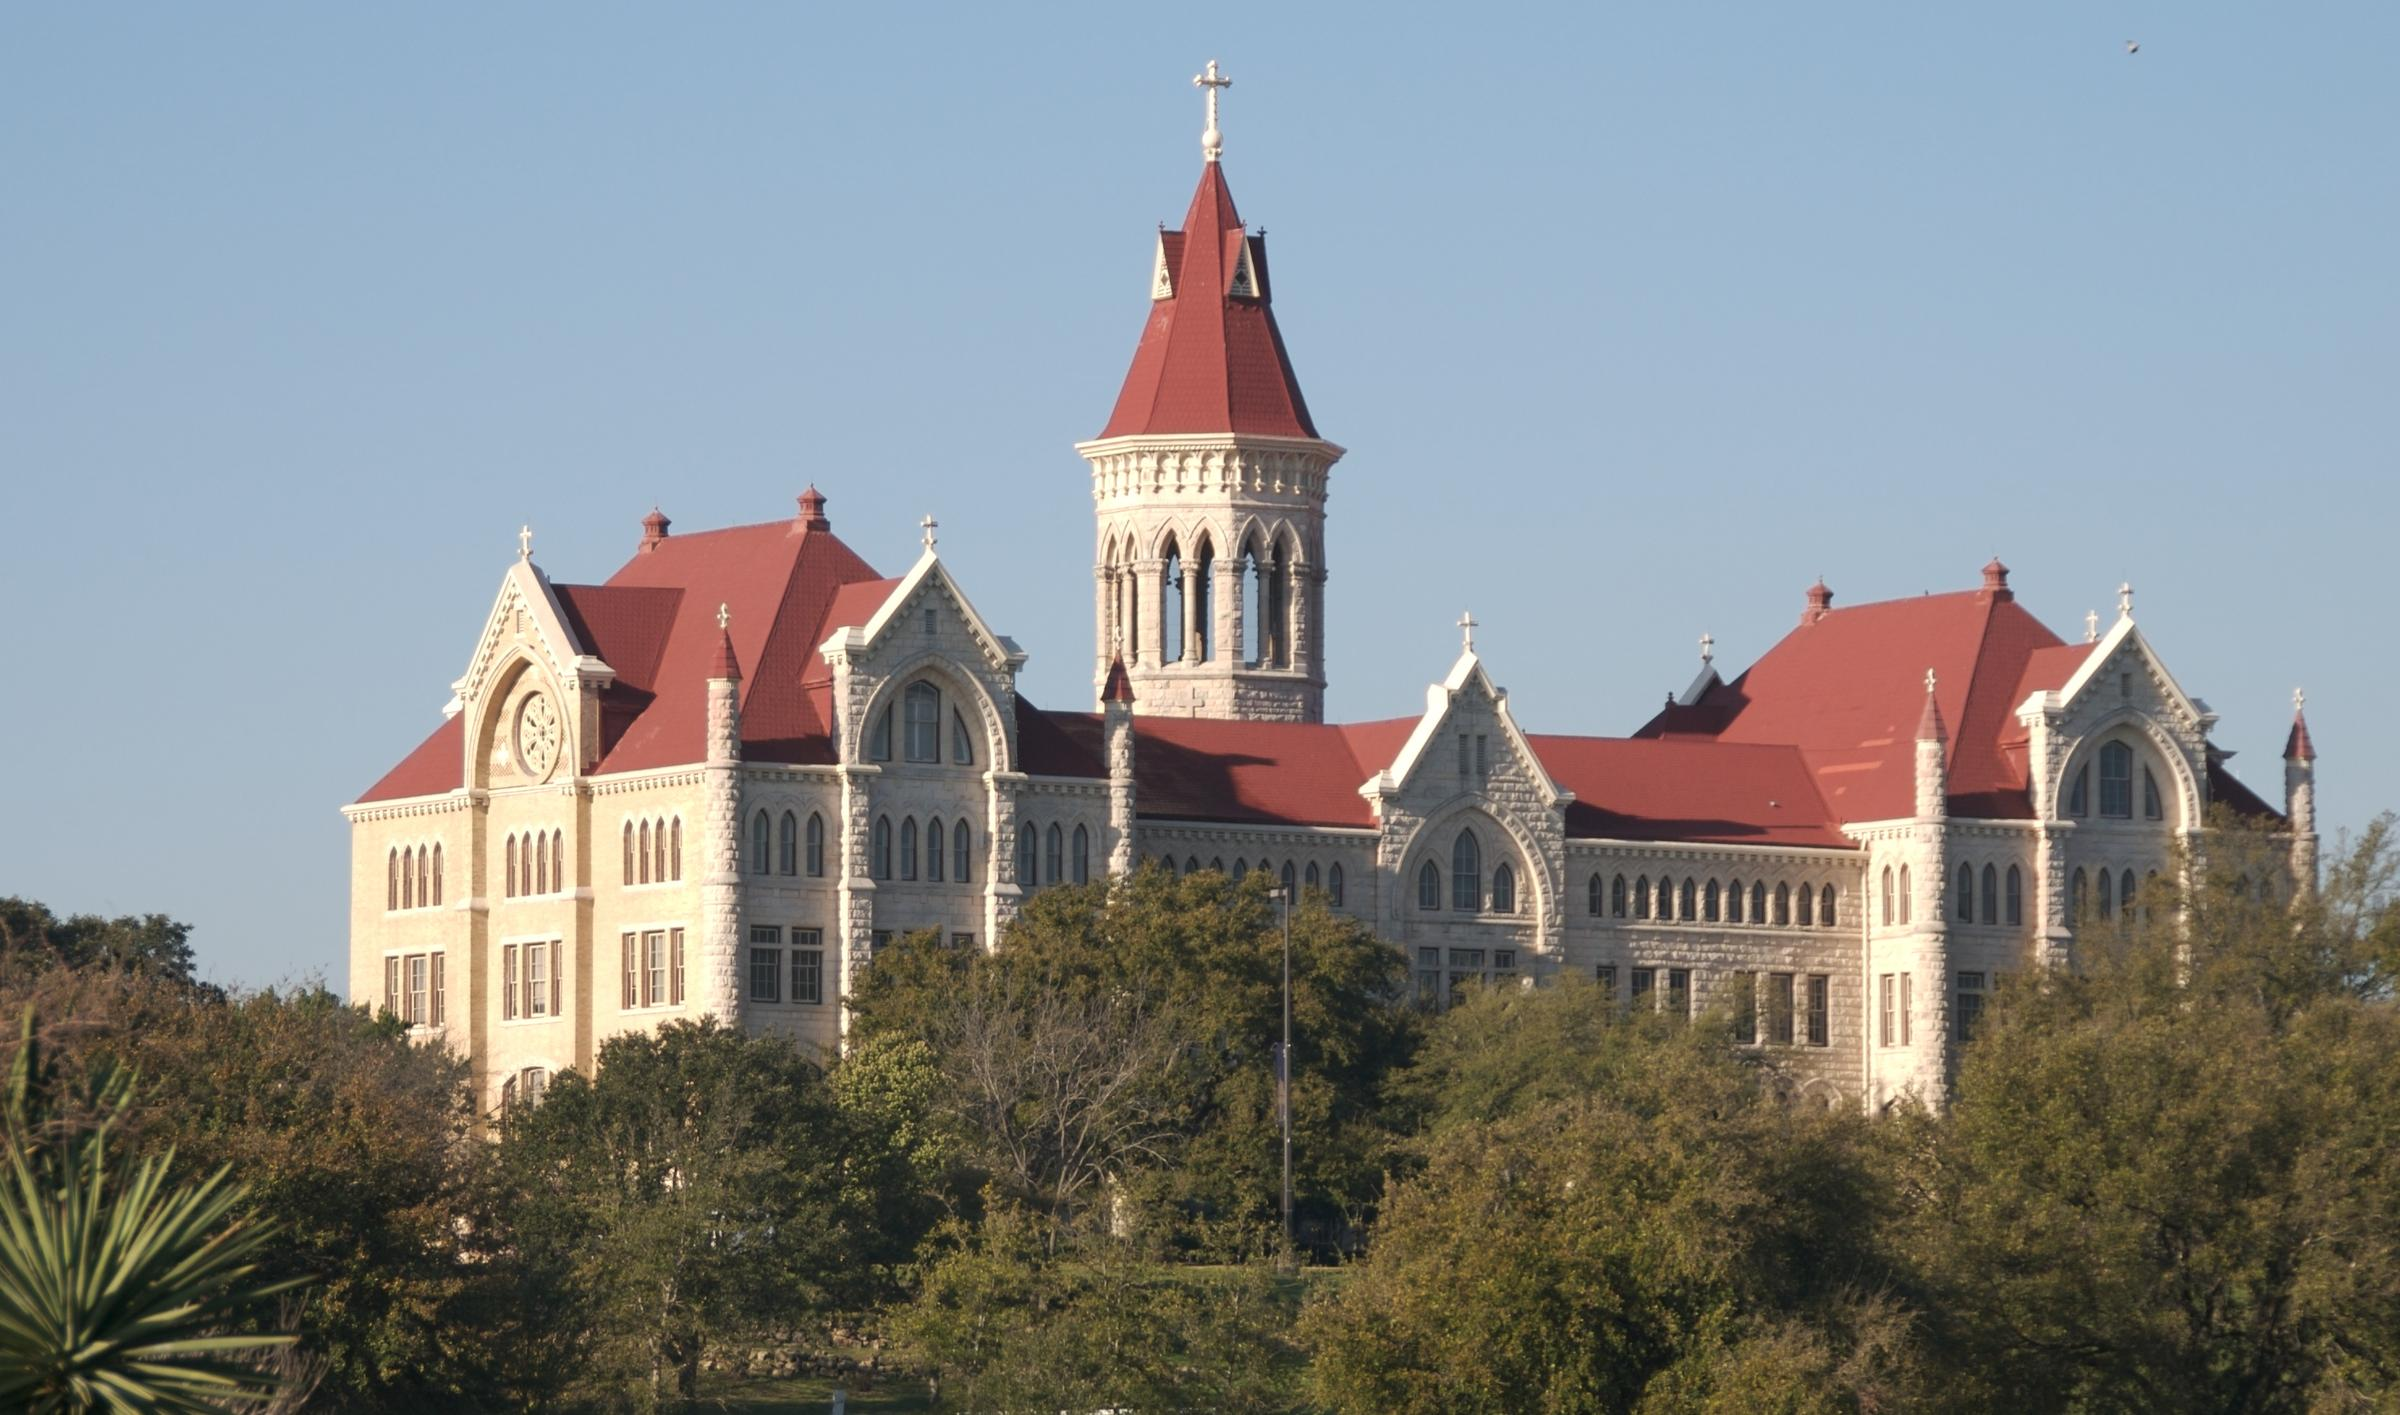 As public universities in Texas prepare to implement the state's new campus carry law some private universities are navigating the process of opting out of the provision